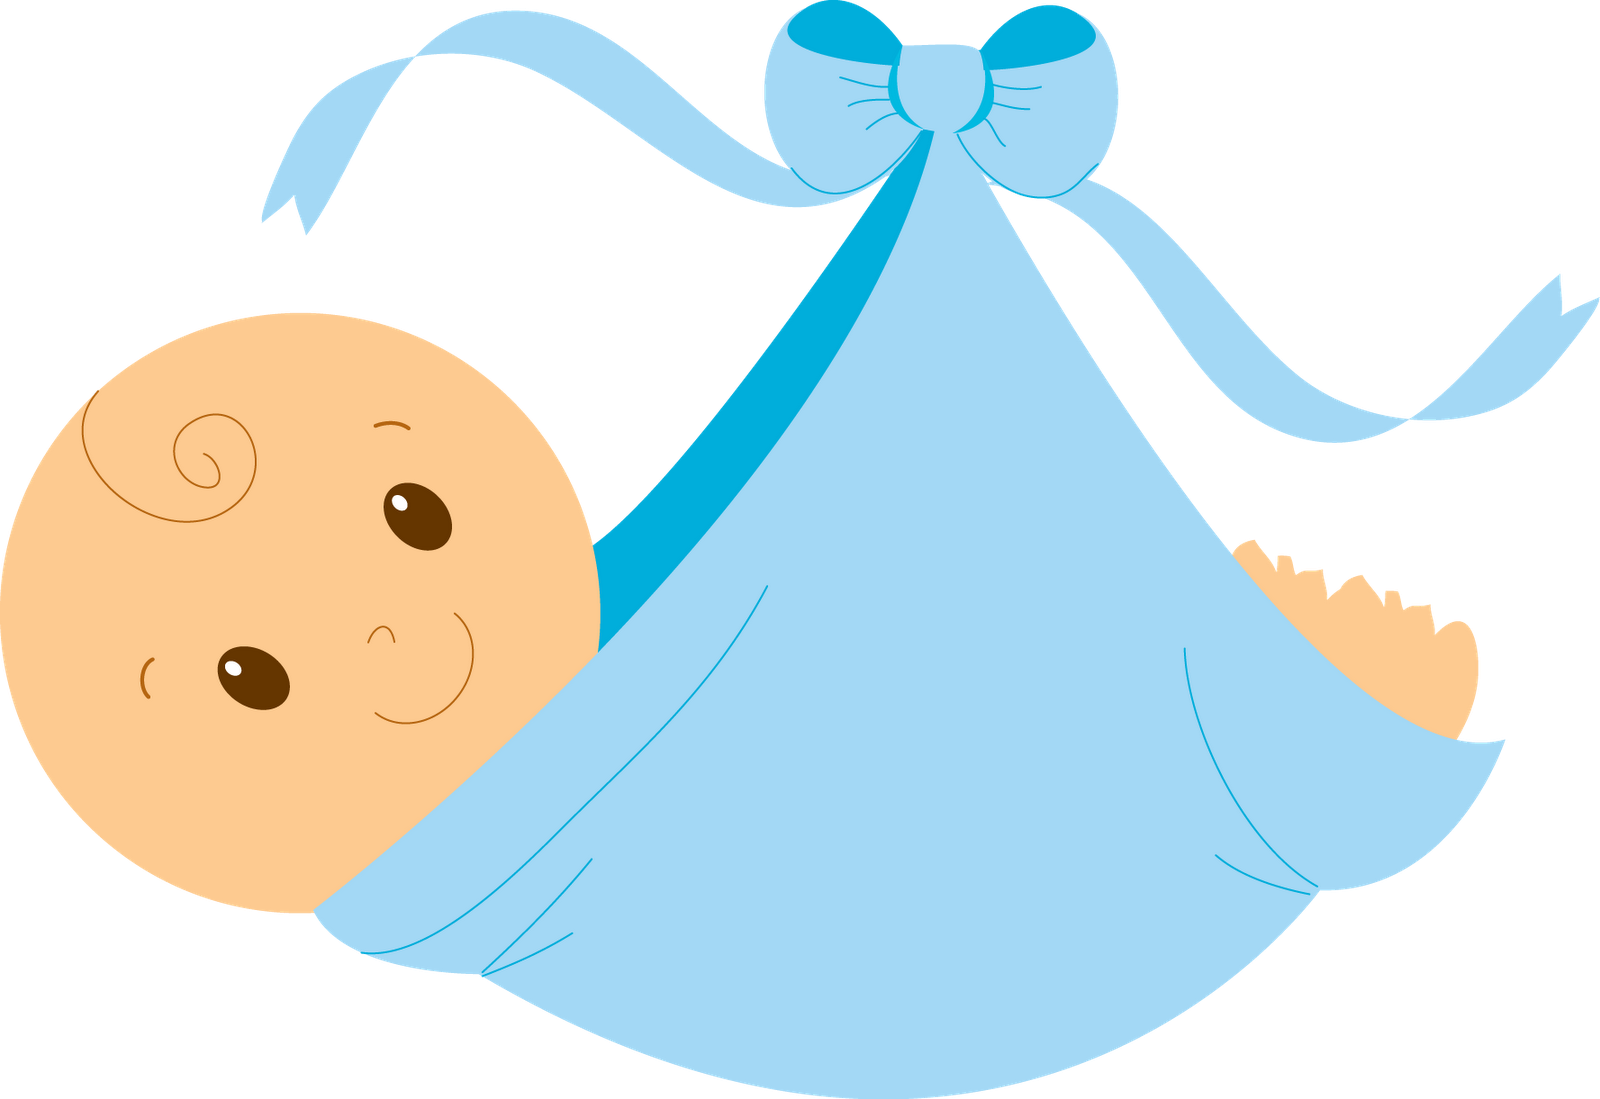 Free newborn baby download. Showering clipart vector